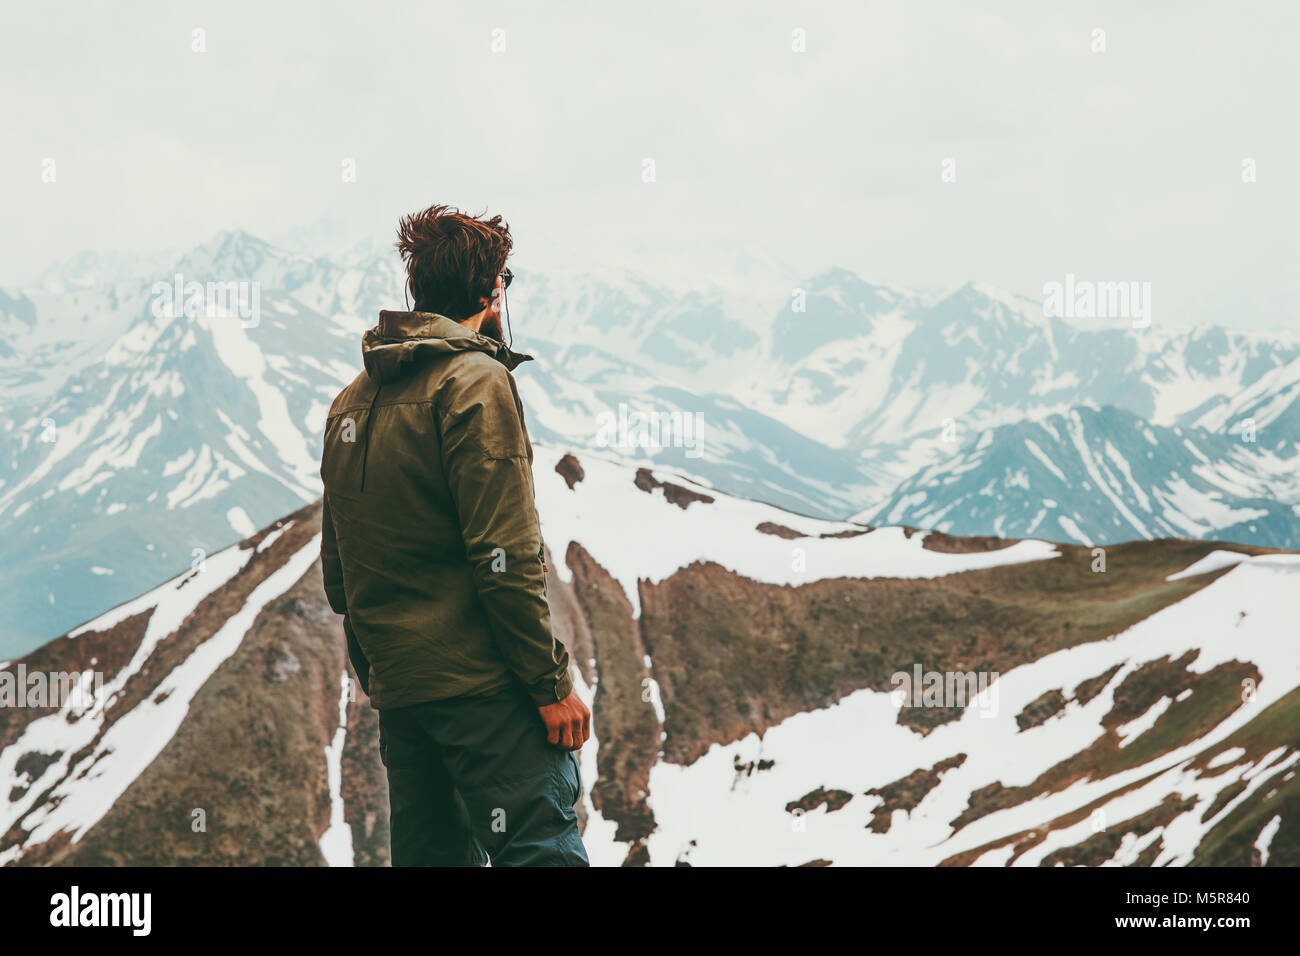 Man traveler alone wander mountains landscape Travel Lifestyle concept adventure outdoor active vacations trekking - Stock Image